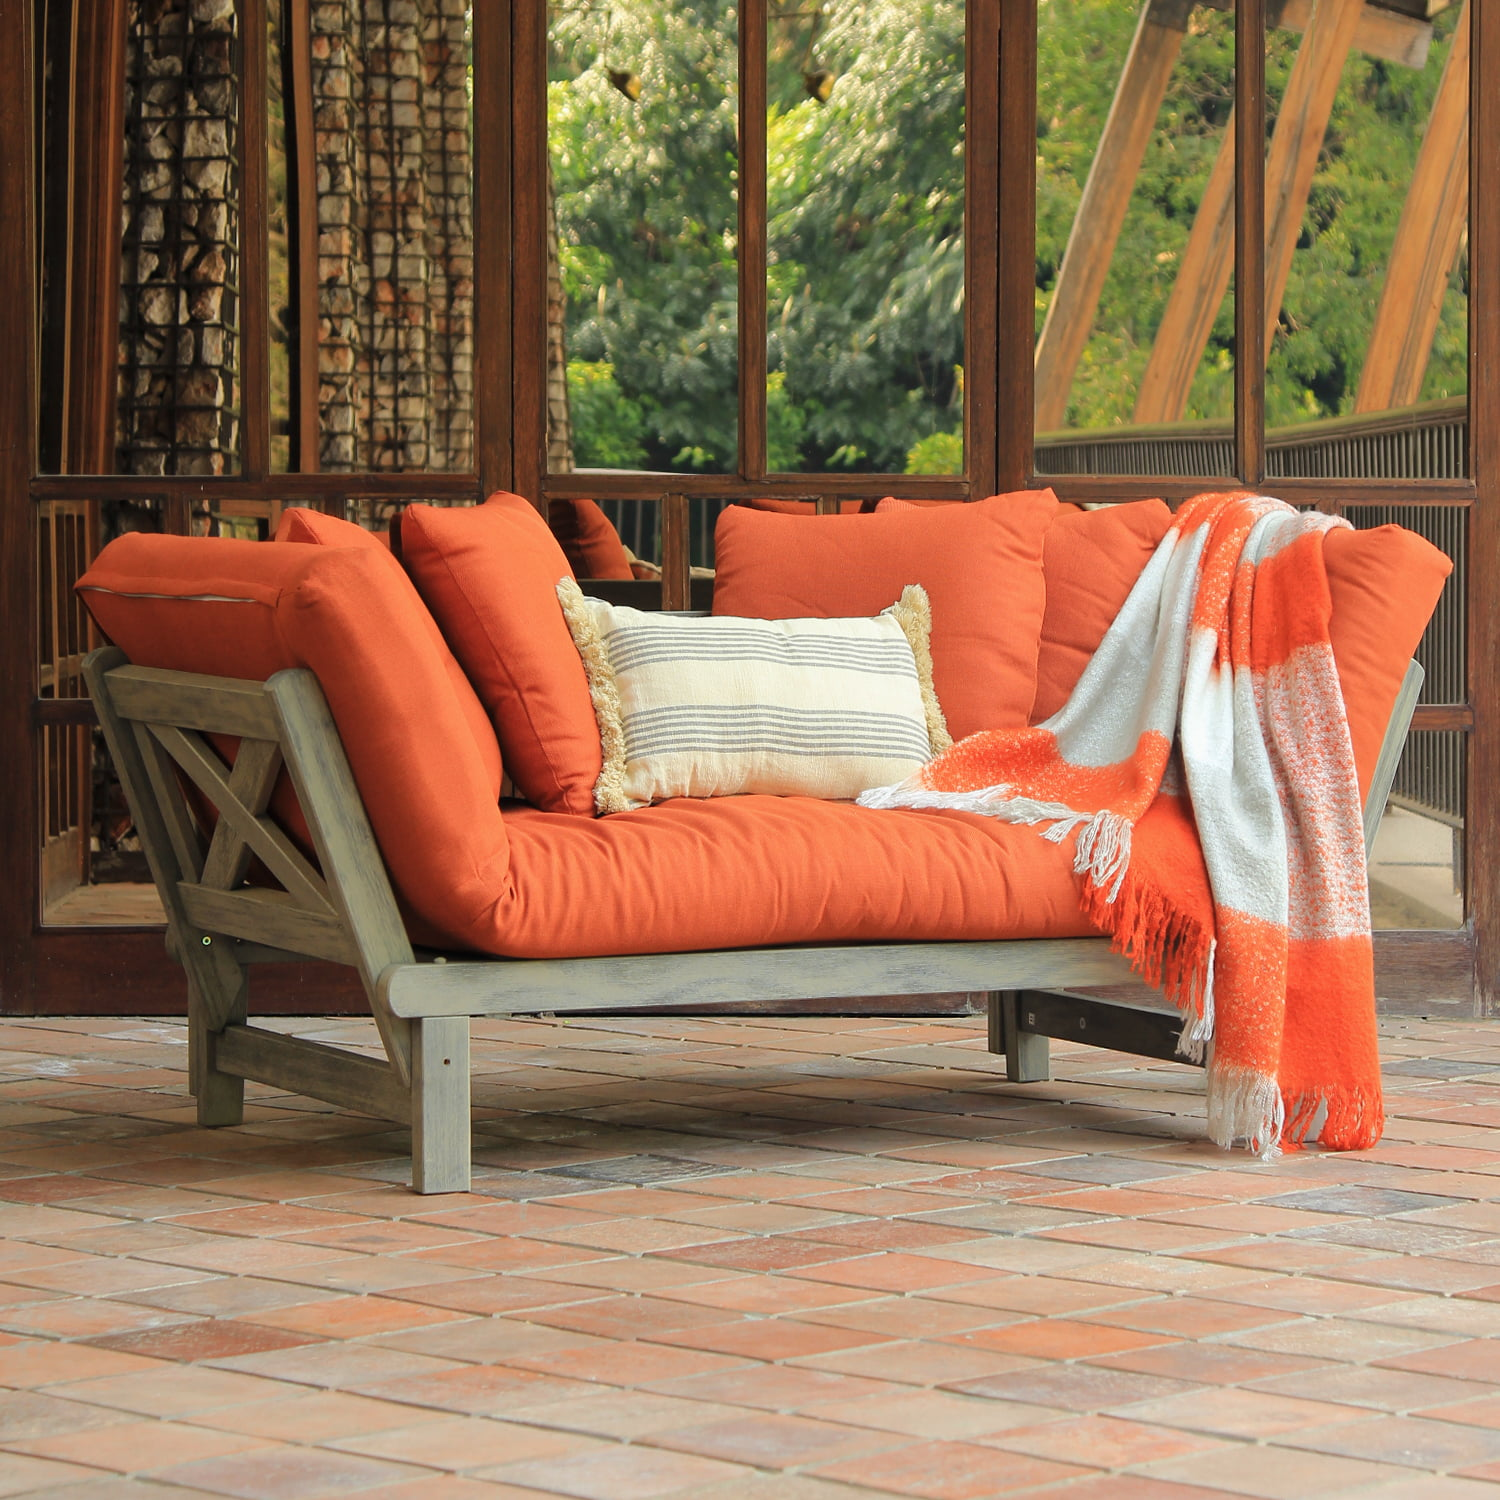 Westlake Solid Wood Outdoor Convertible Sofa Daybed with ...